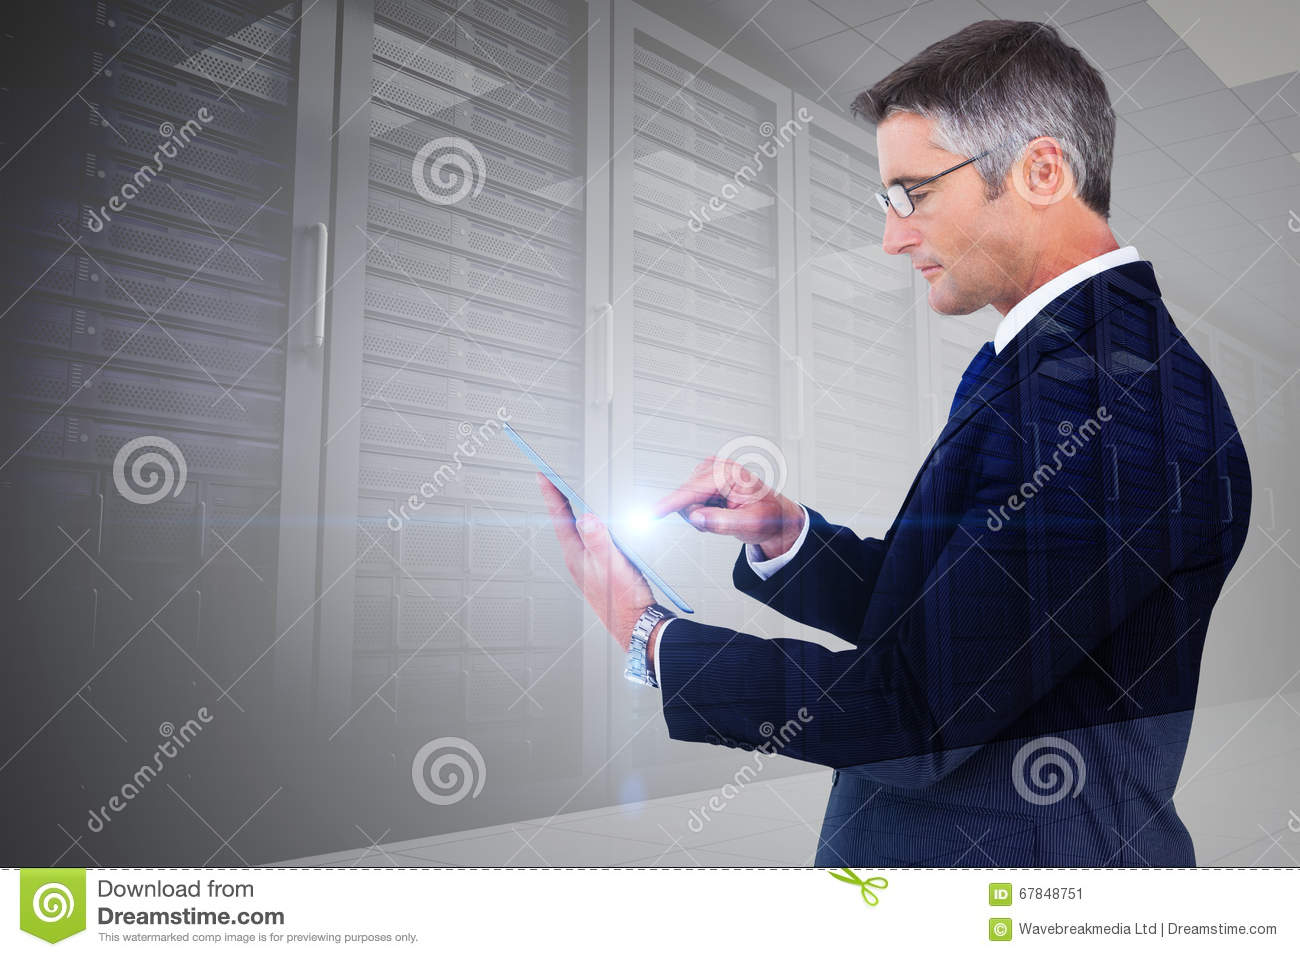 Composite image of mid section of a businessman touching tablet